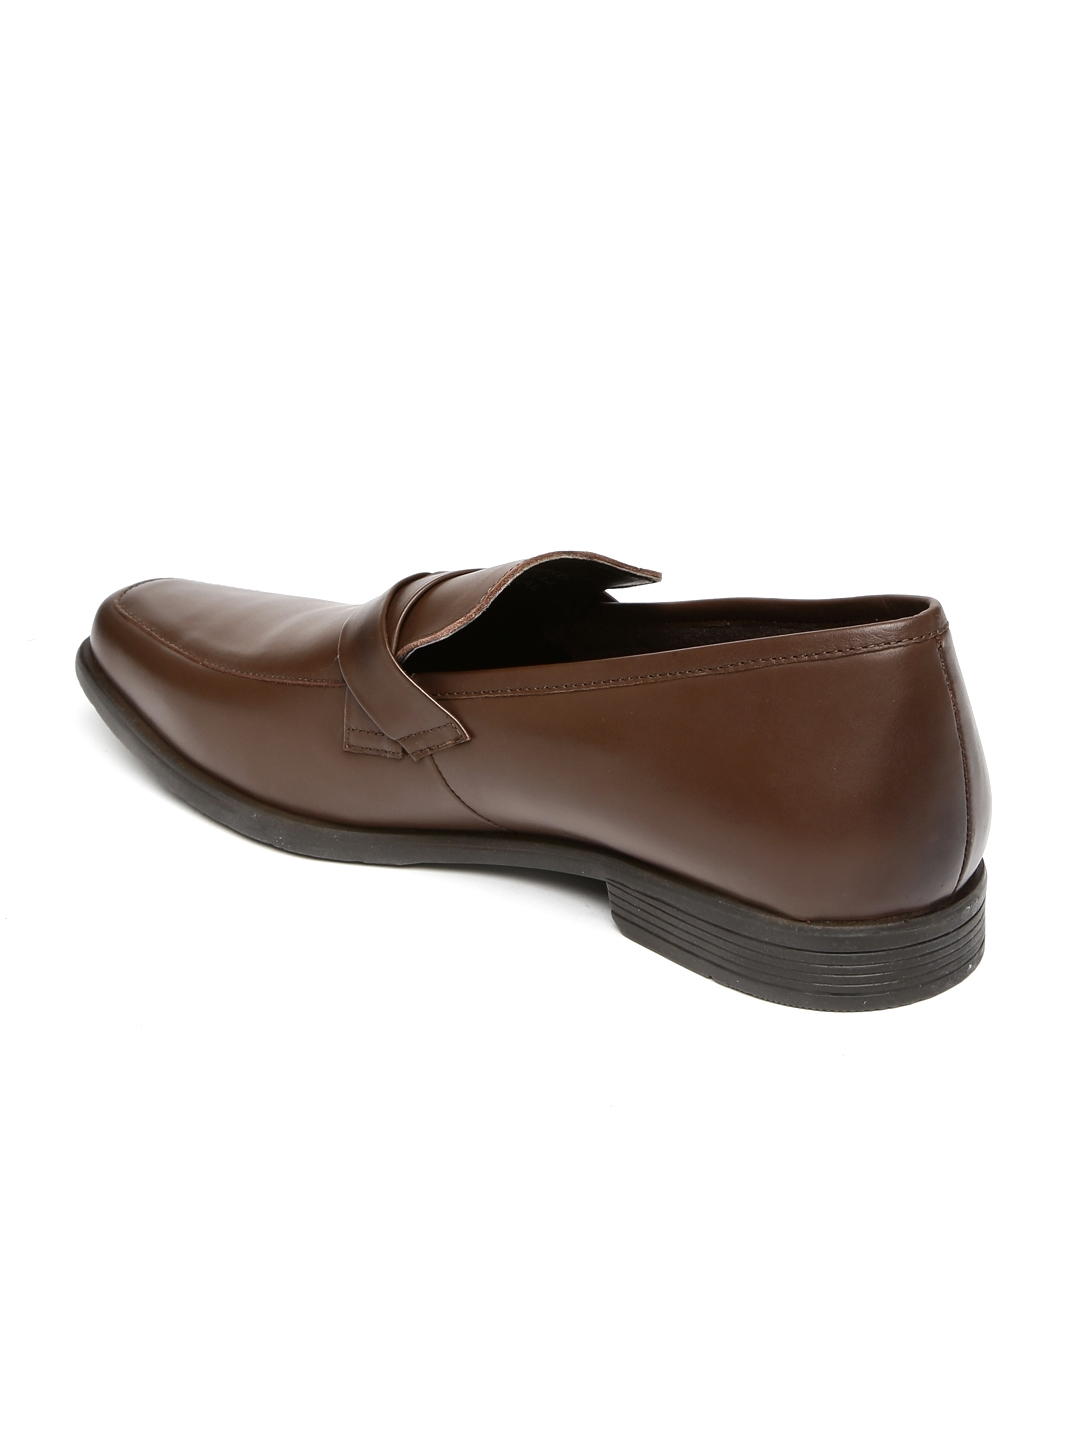 Buy Van Heusen Men Tan Brown Leather Formal Slip Ons - Formal Shoes ... f1d34e7af